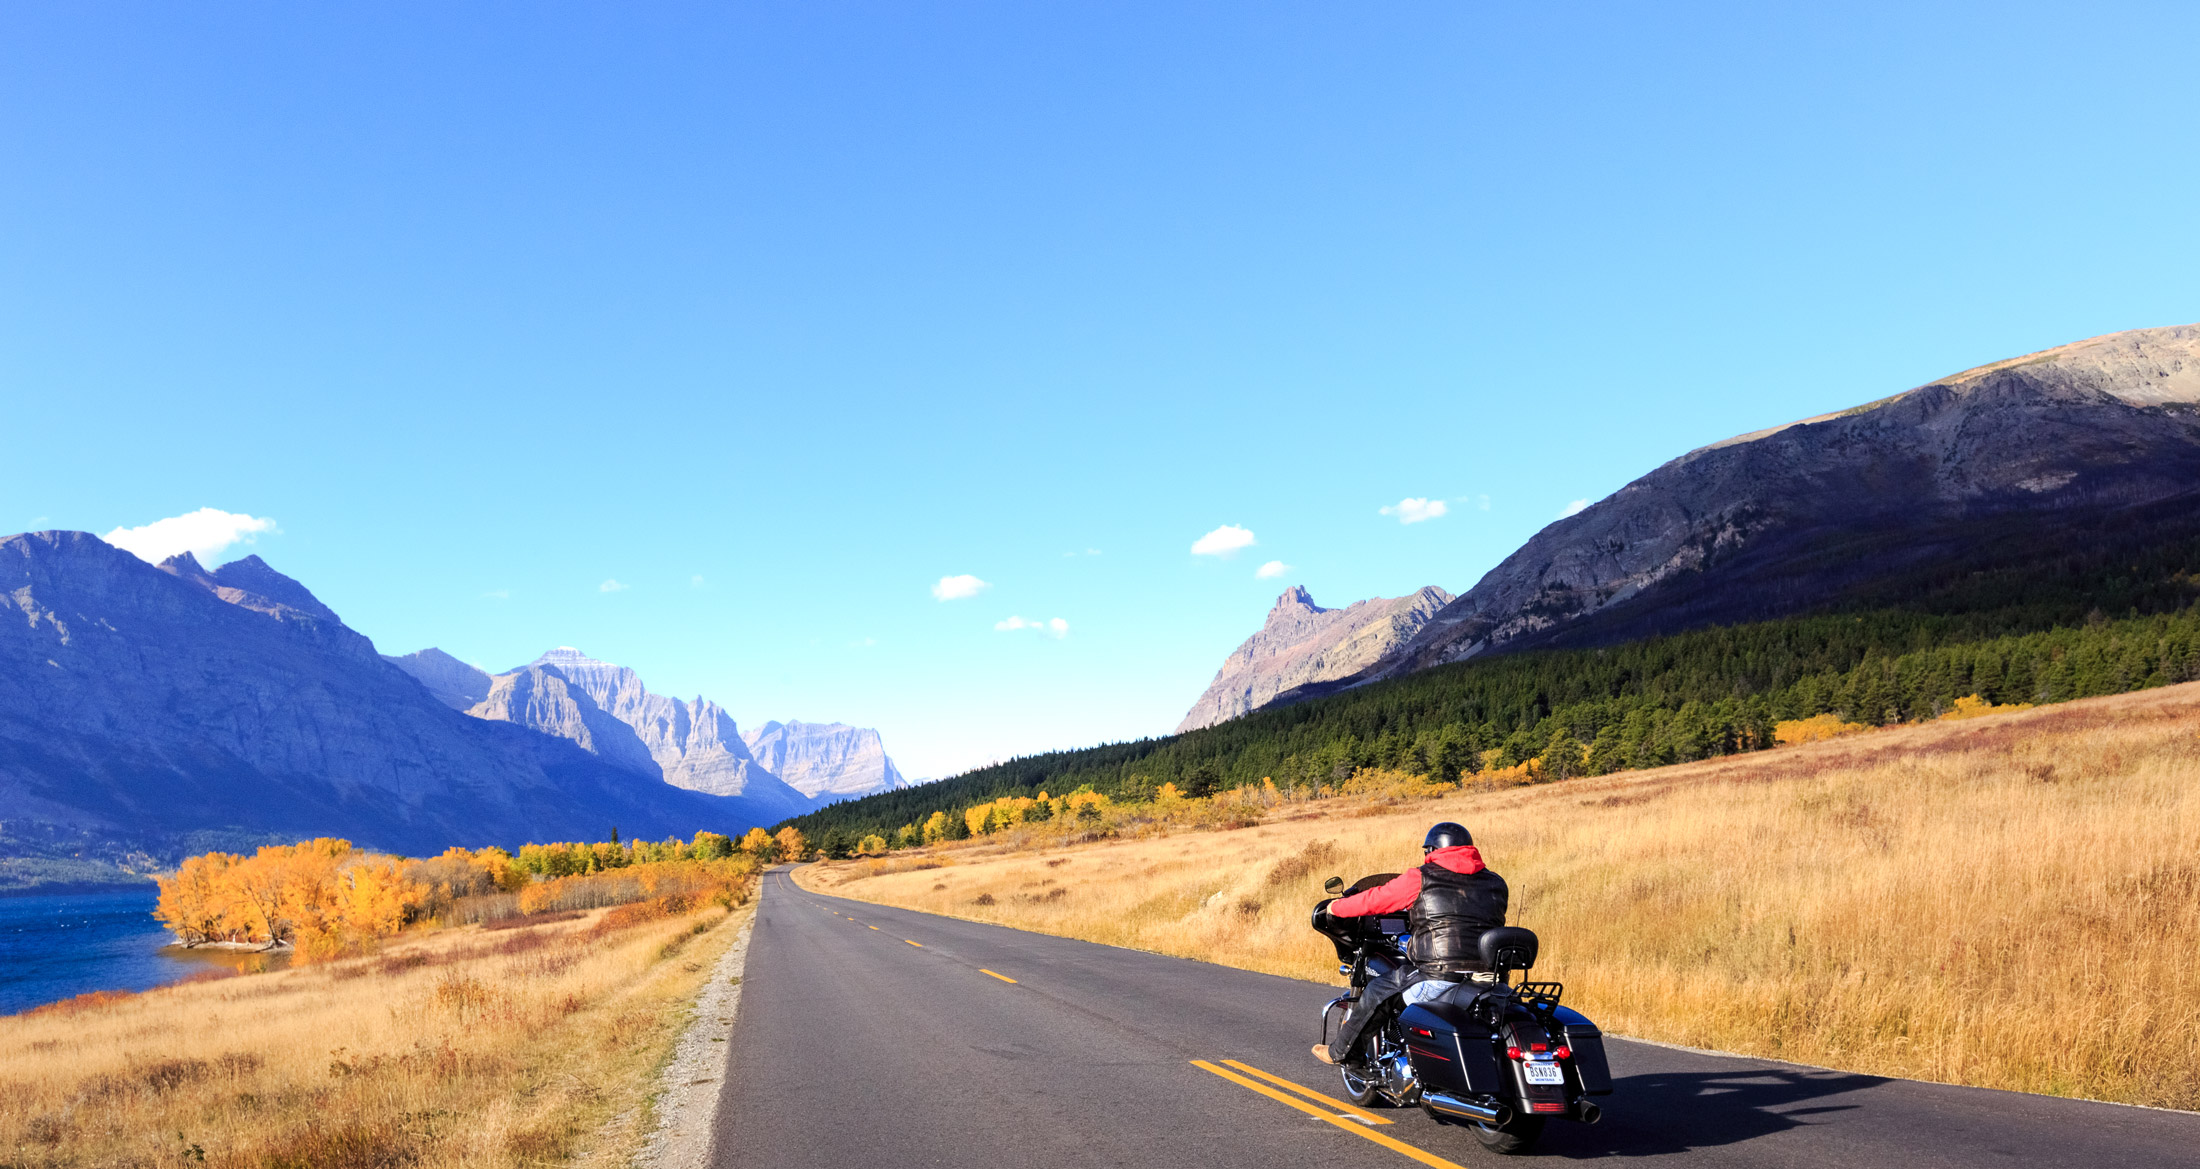 Travel Western Montana's scenic byways by car or motorcycle in the fall.